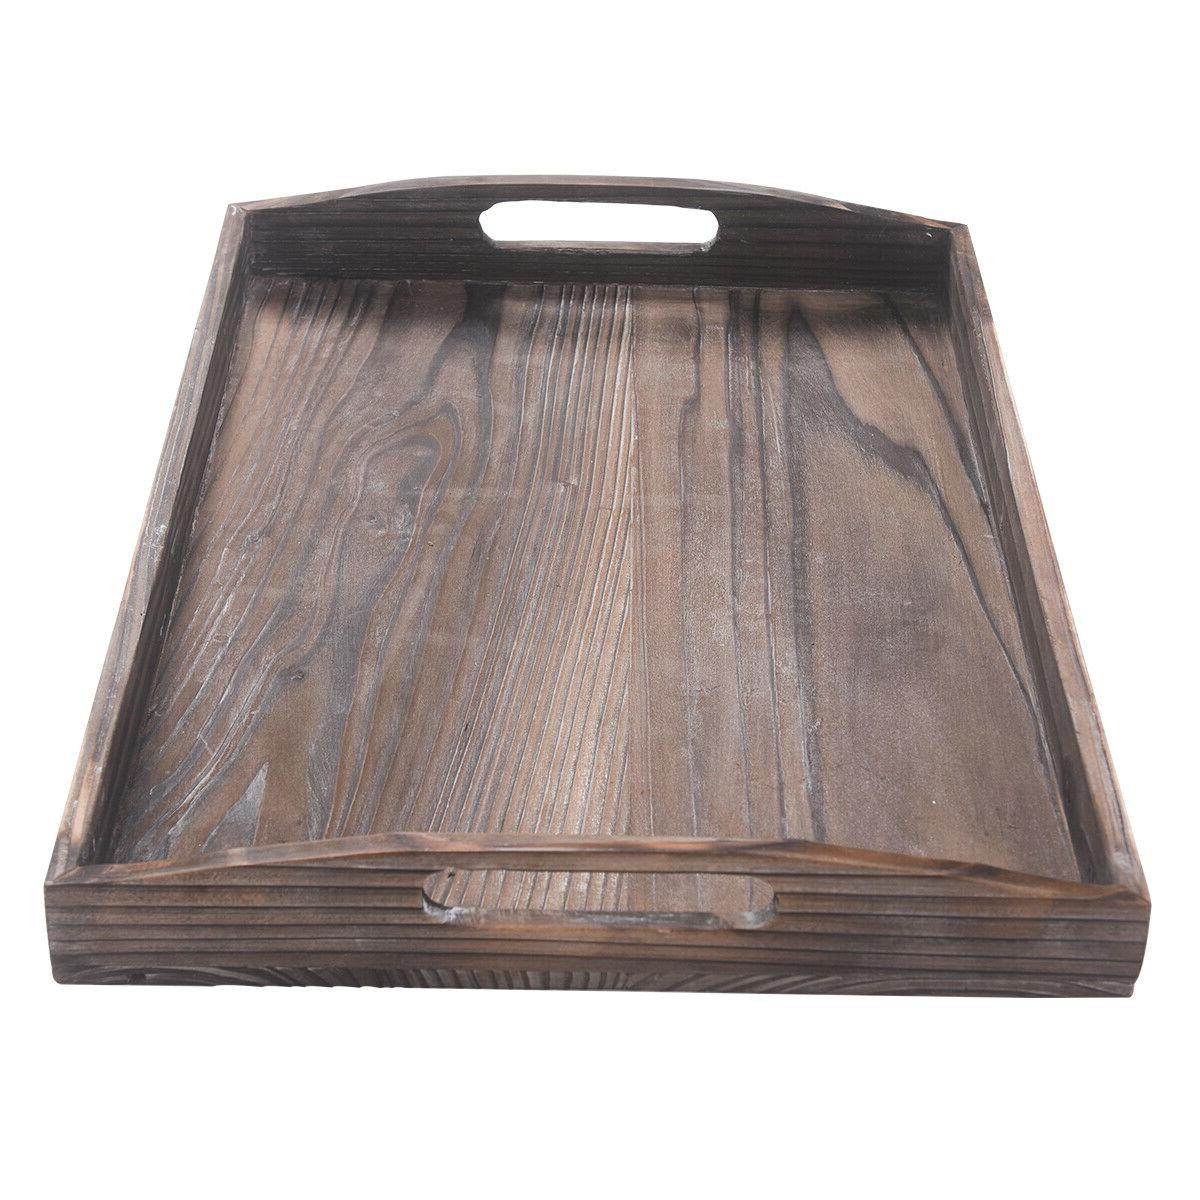 Ottoman Serving Trays,Wood Tray